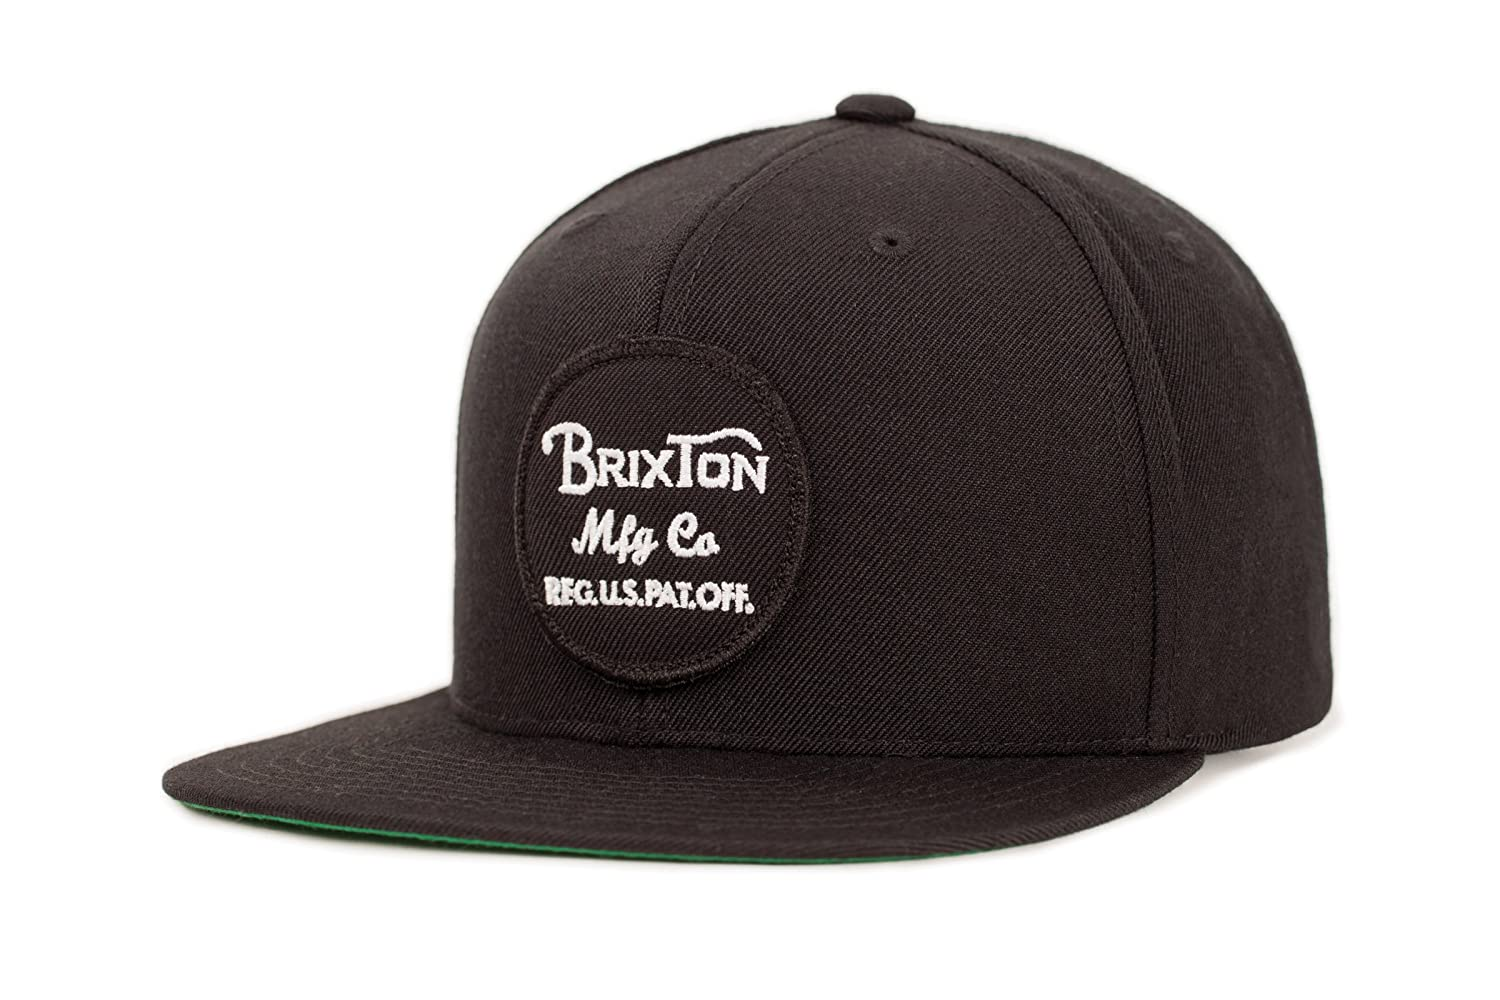 Brixton Men's Wheeler Medium Profile Adjustable Snapback Hat black/gold One Size 00375